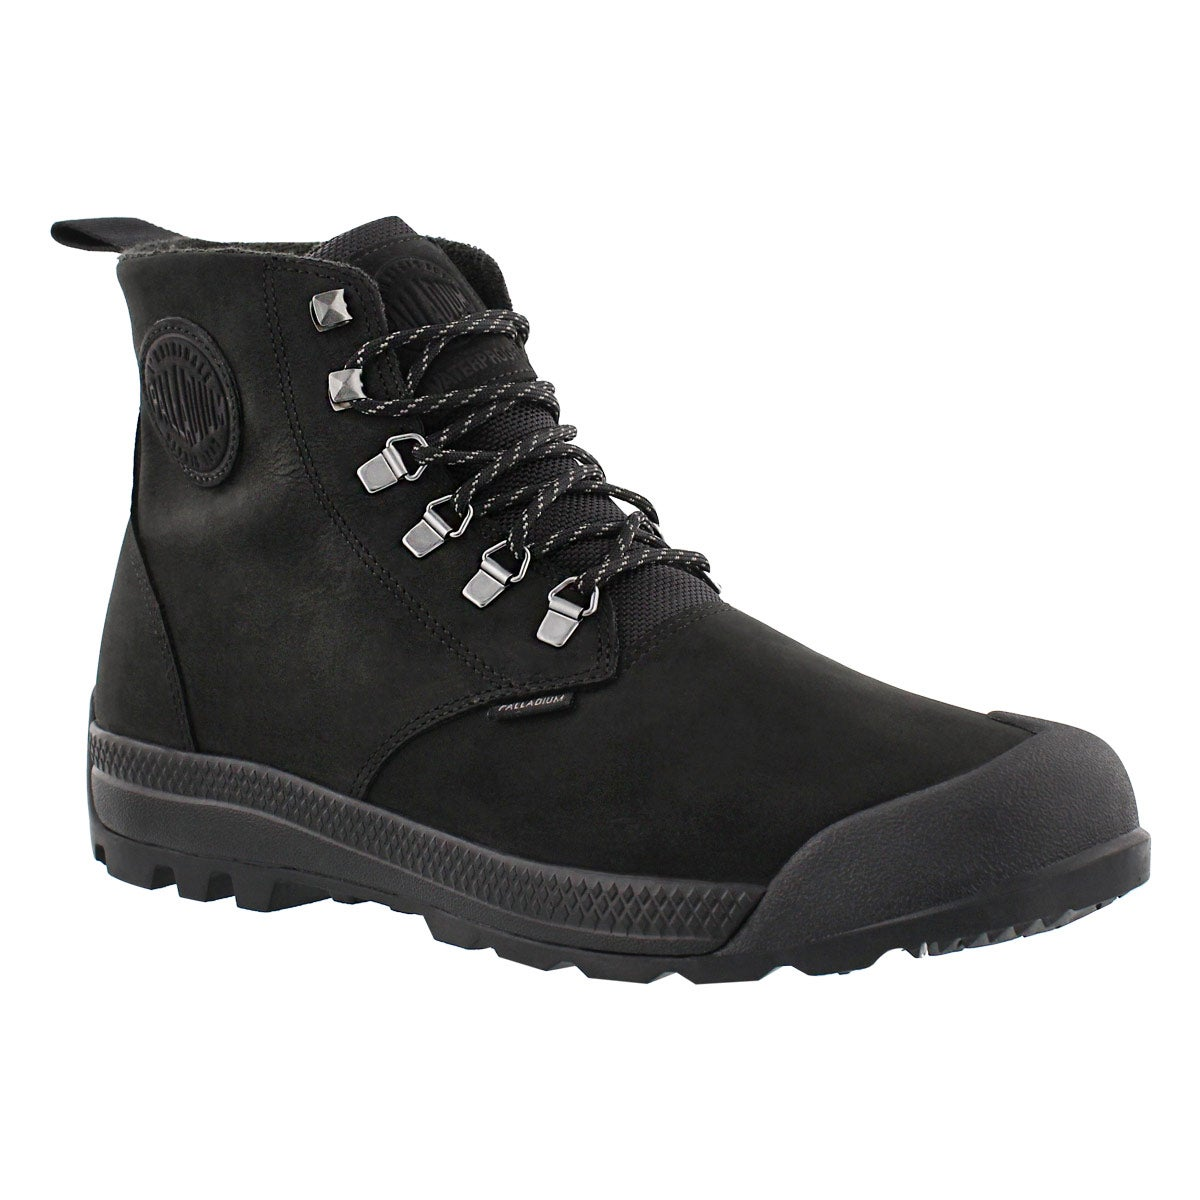 Men's PAMPATECH HI blk/blk waterproof ankle boots